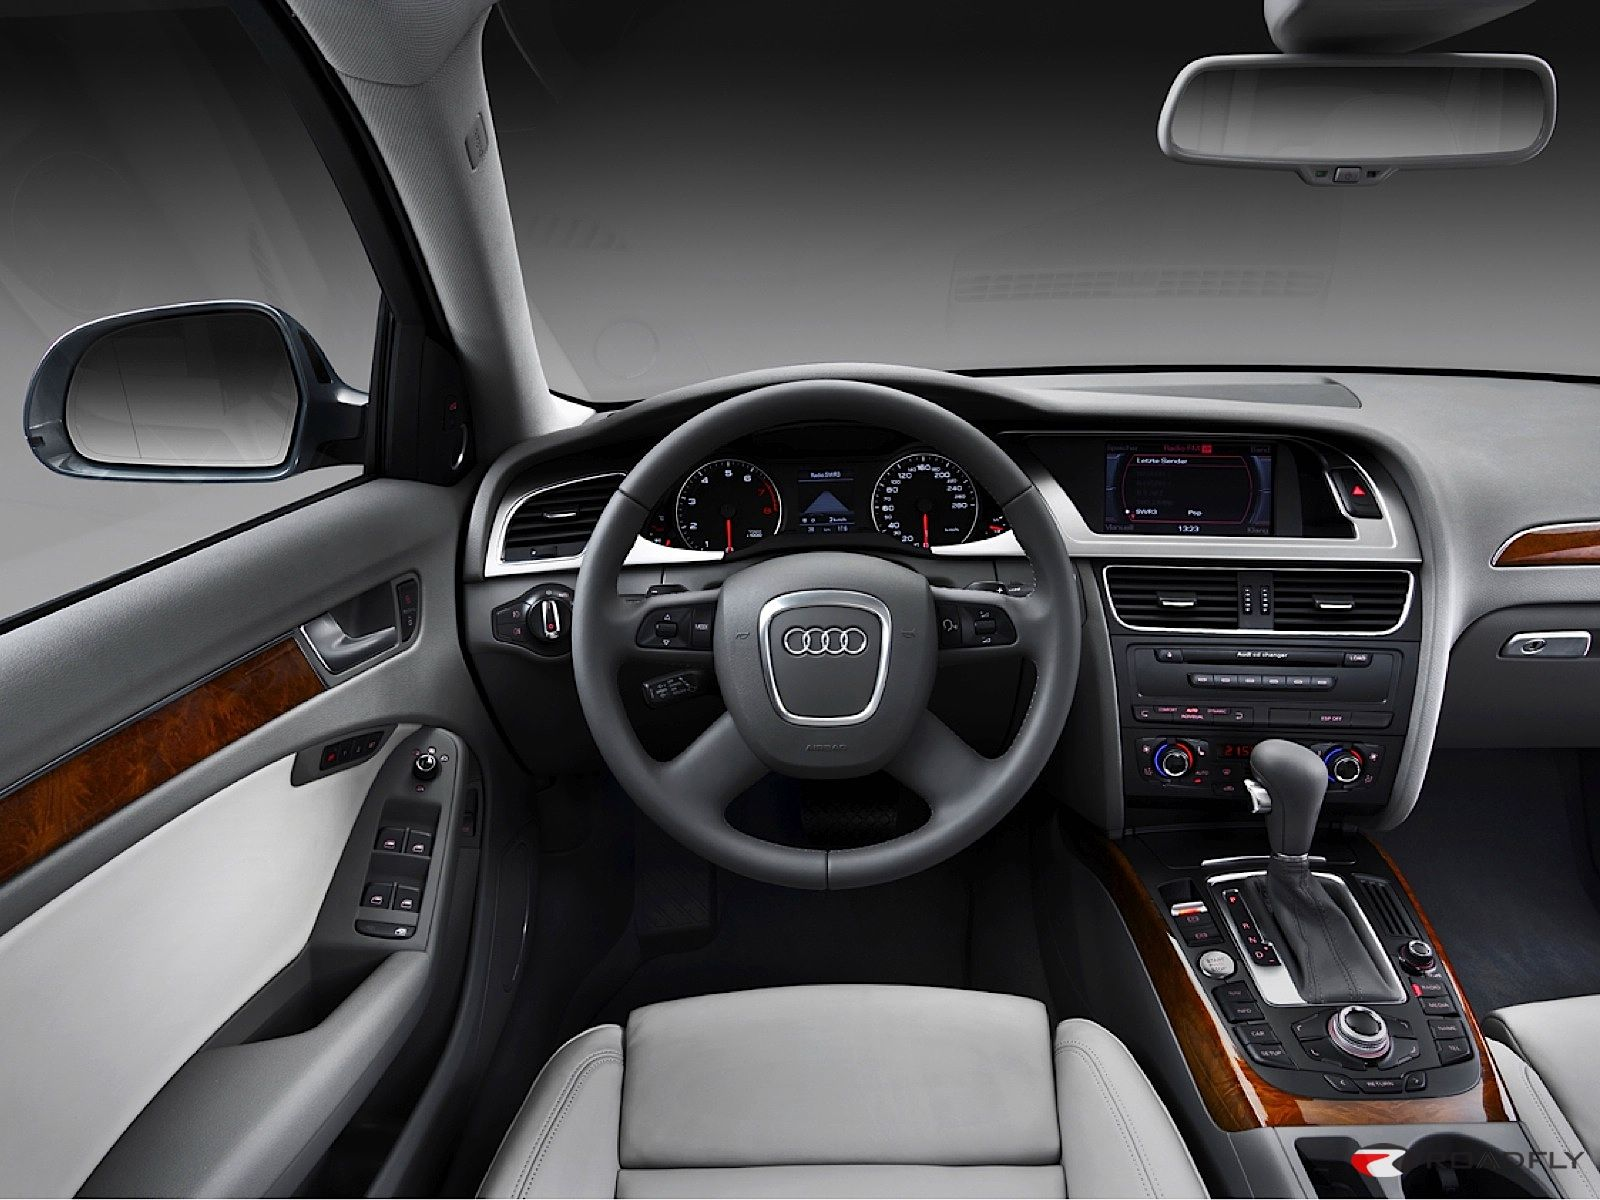 B8 Audi A4 Avant Interior | Cars | Pinterest | Audi a4 and Cars